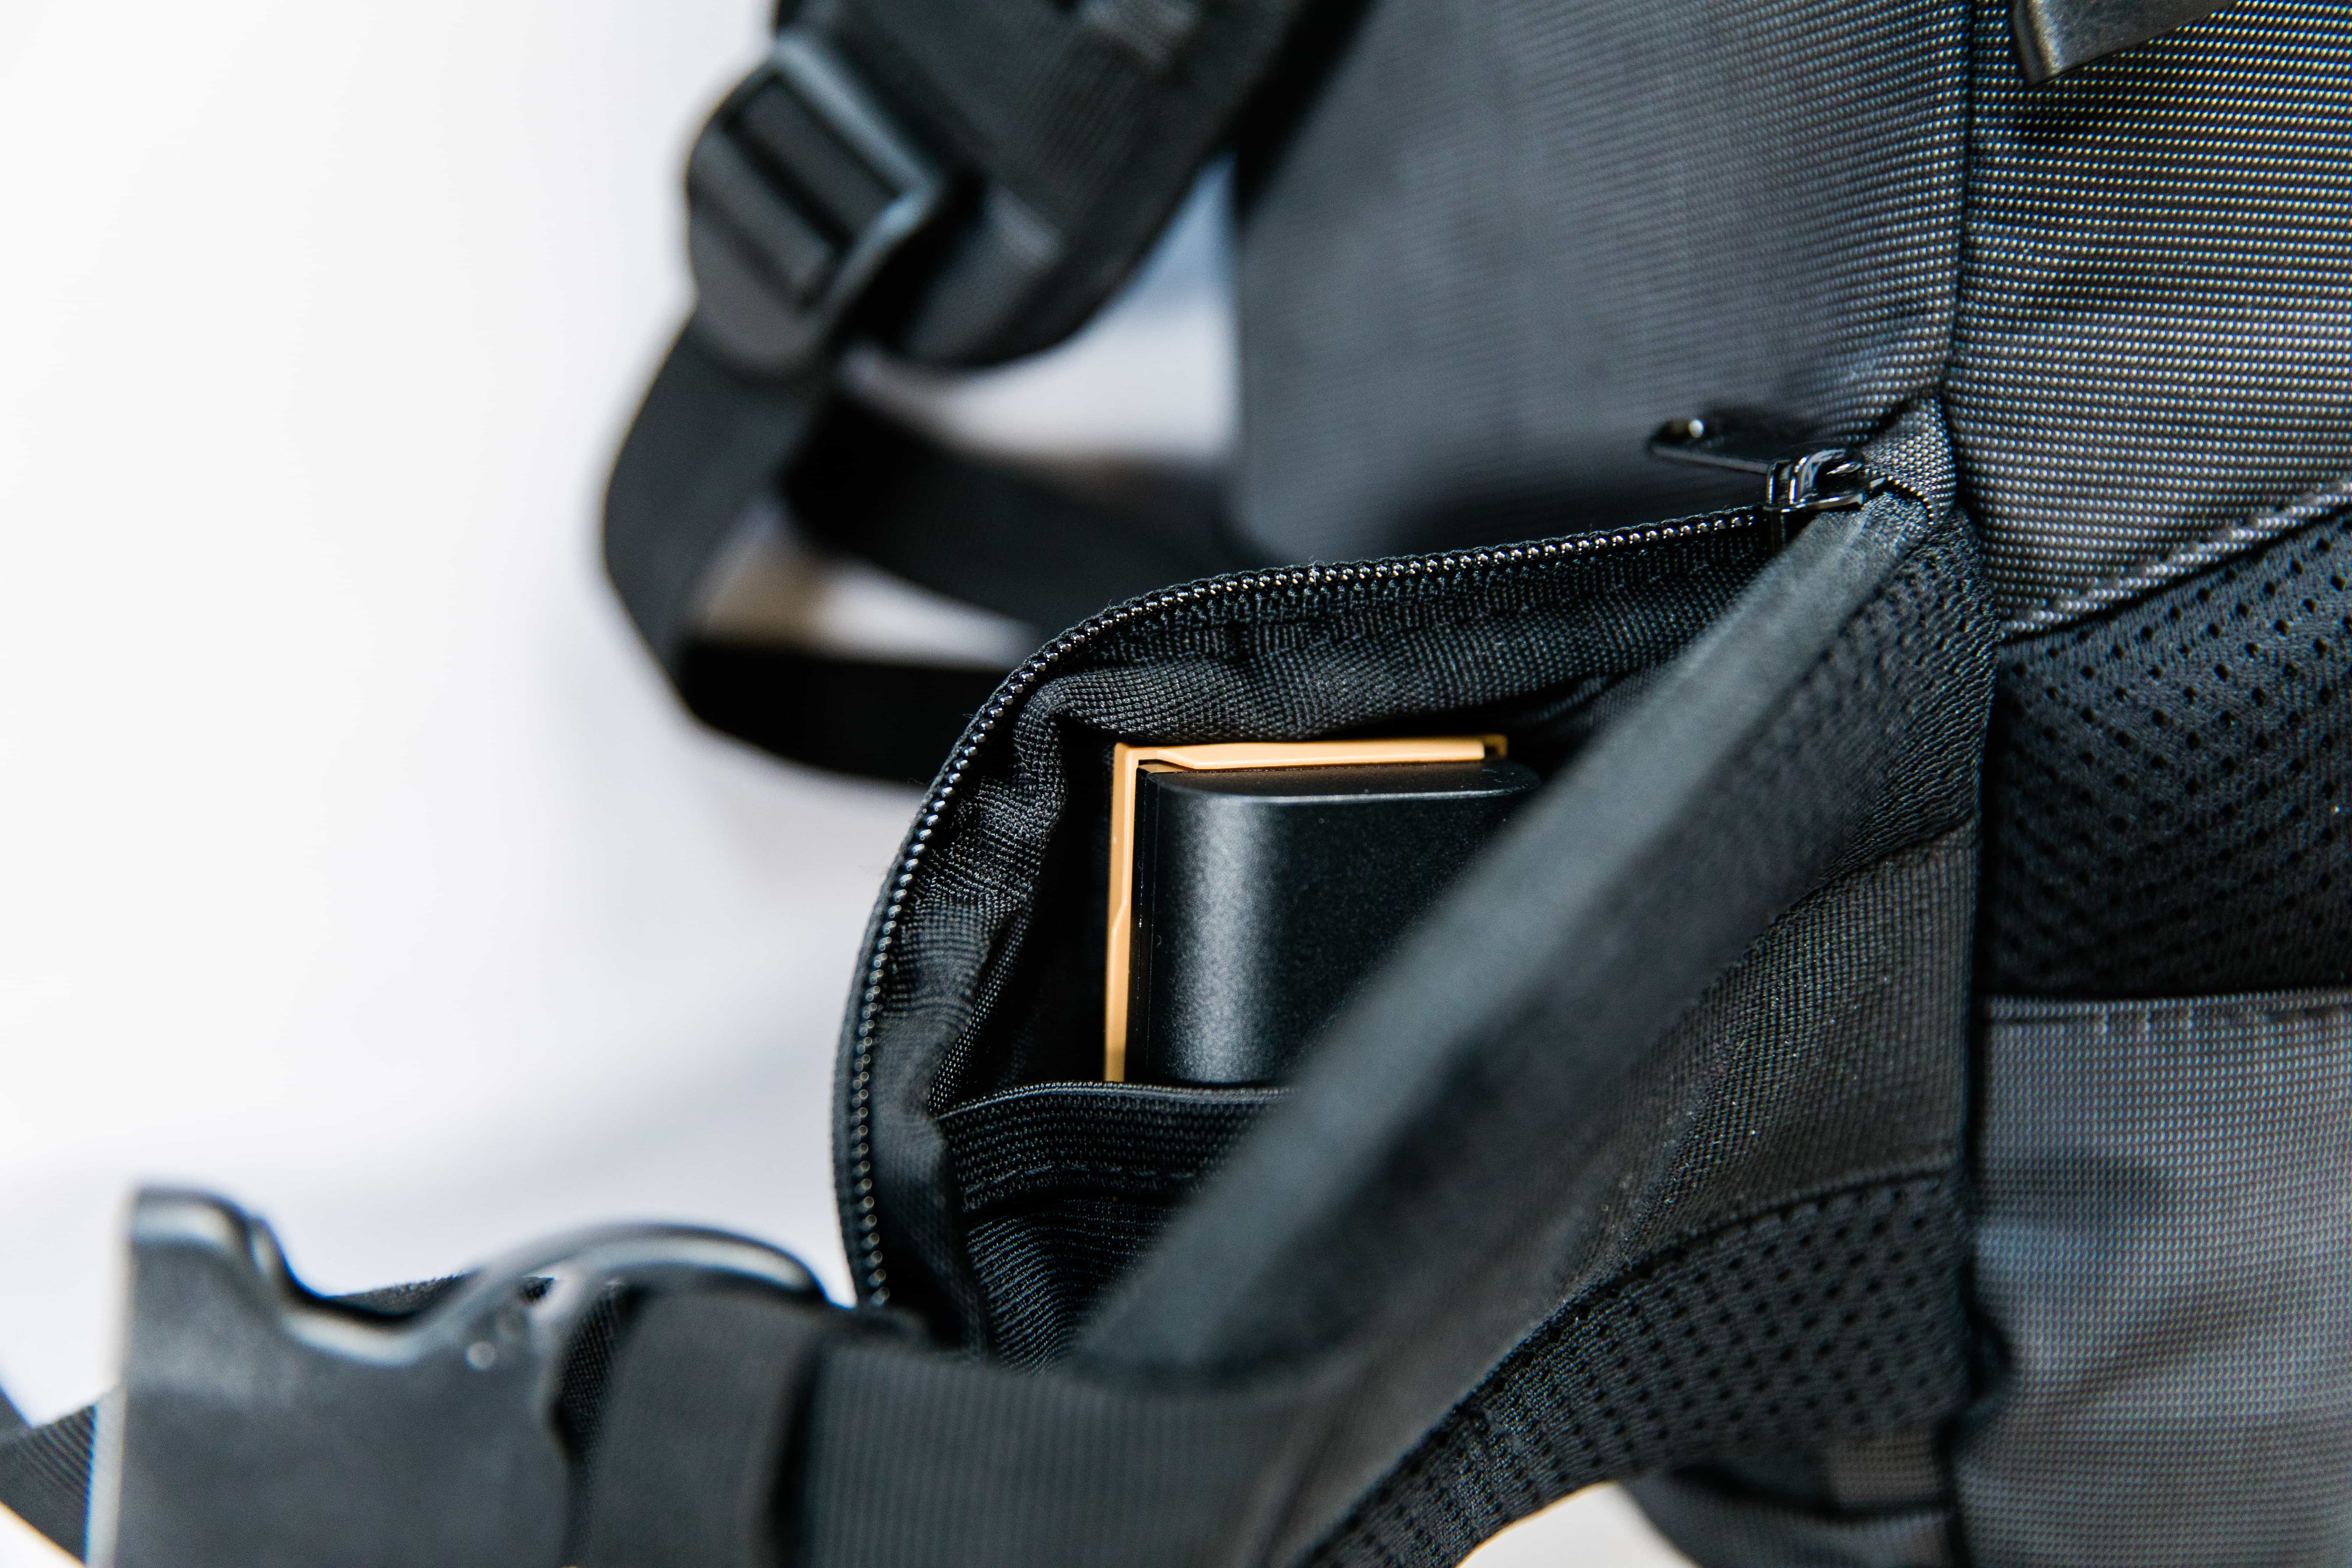 Pockets on the hip straps with Canon battery inside